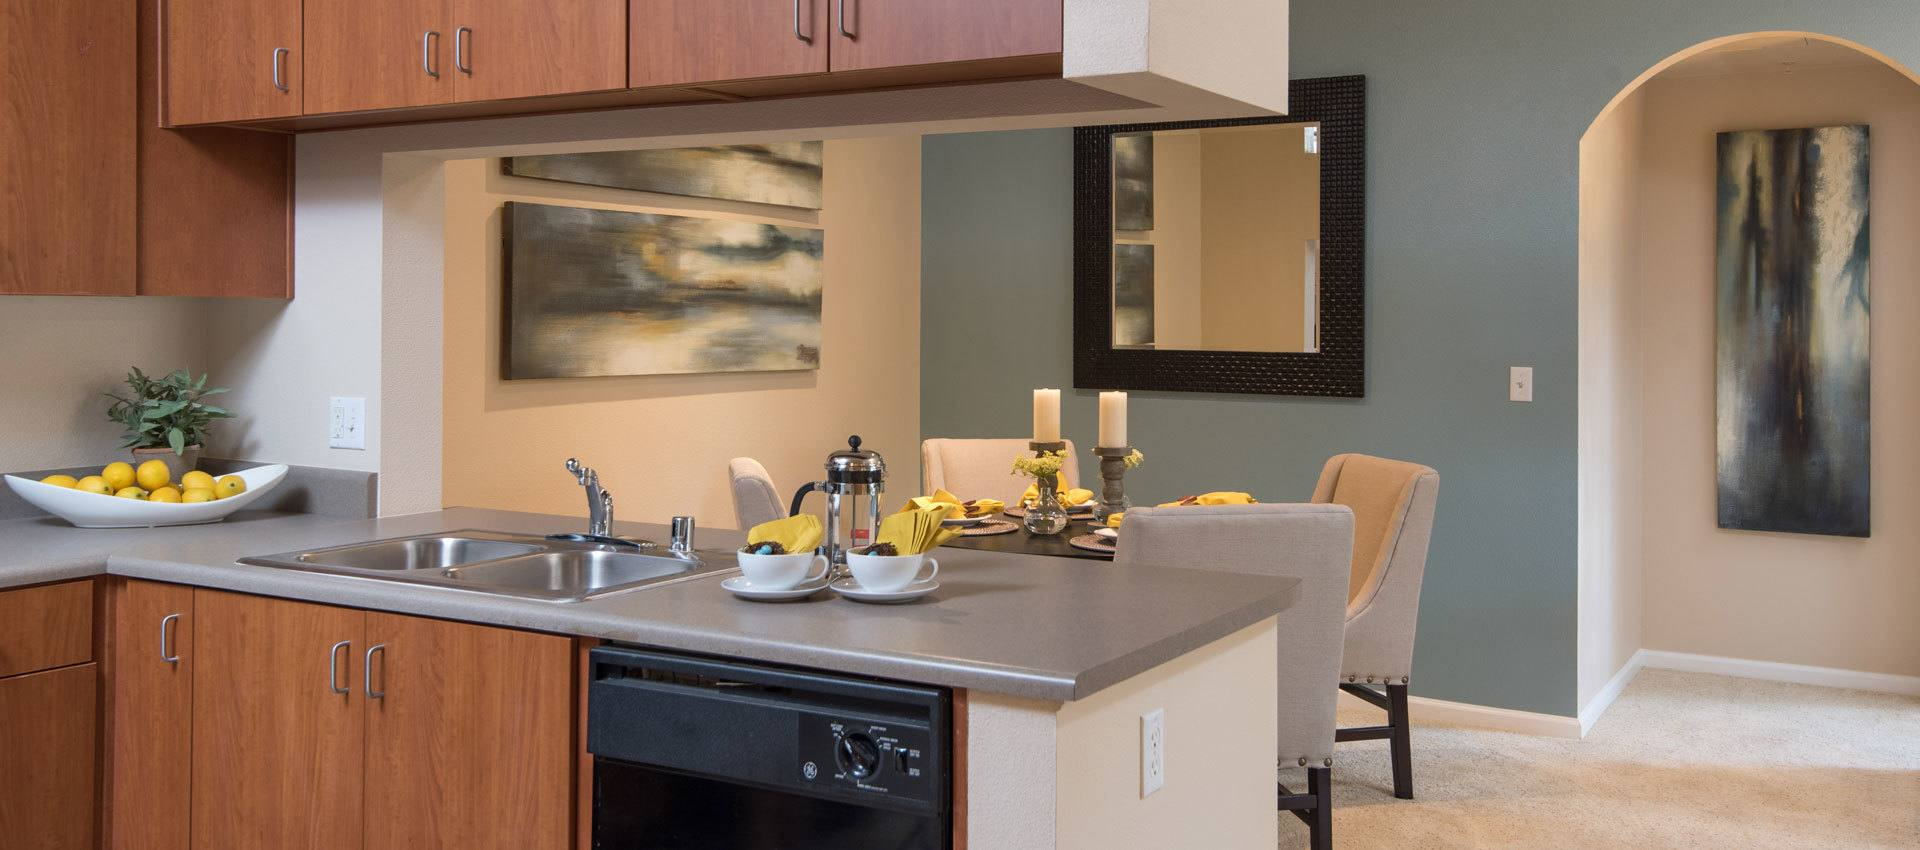 State-of-the-art kitchen with wooden cabinetry at Esplanade Apartment Homes in Riverside, California